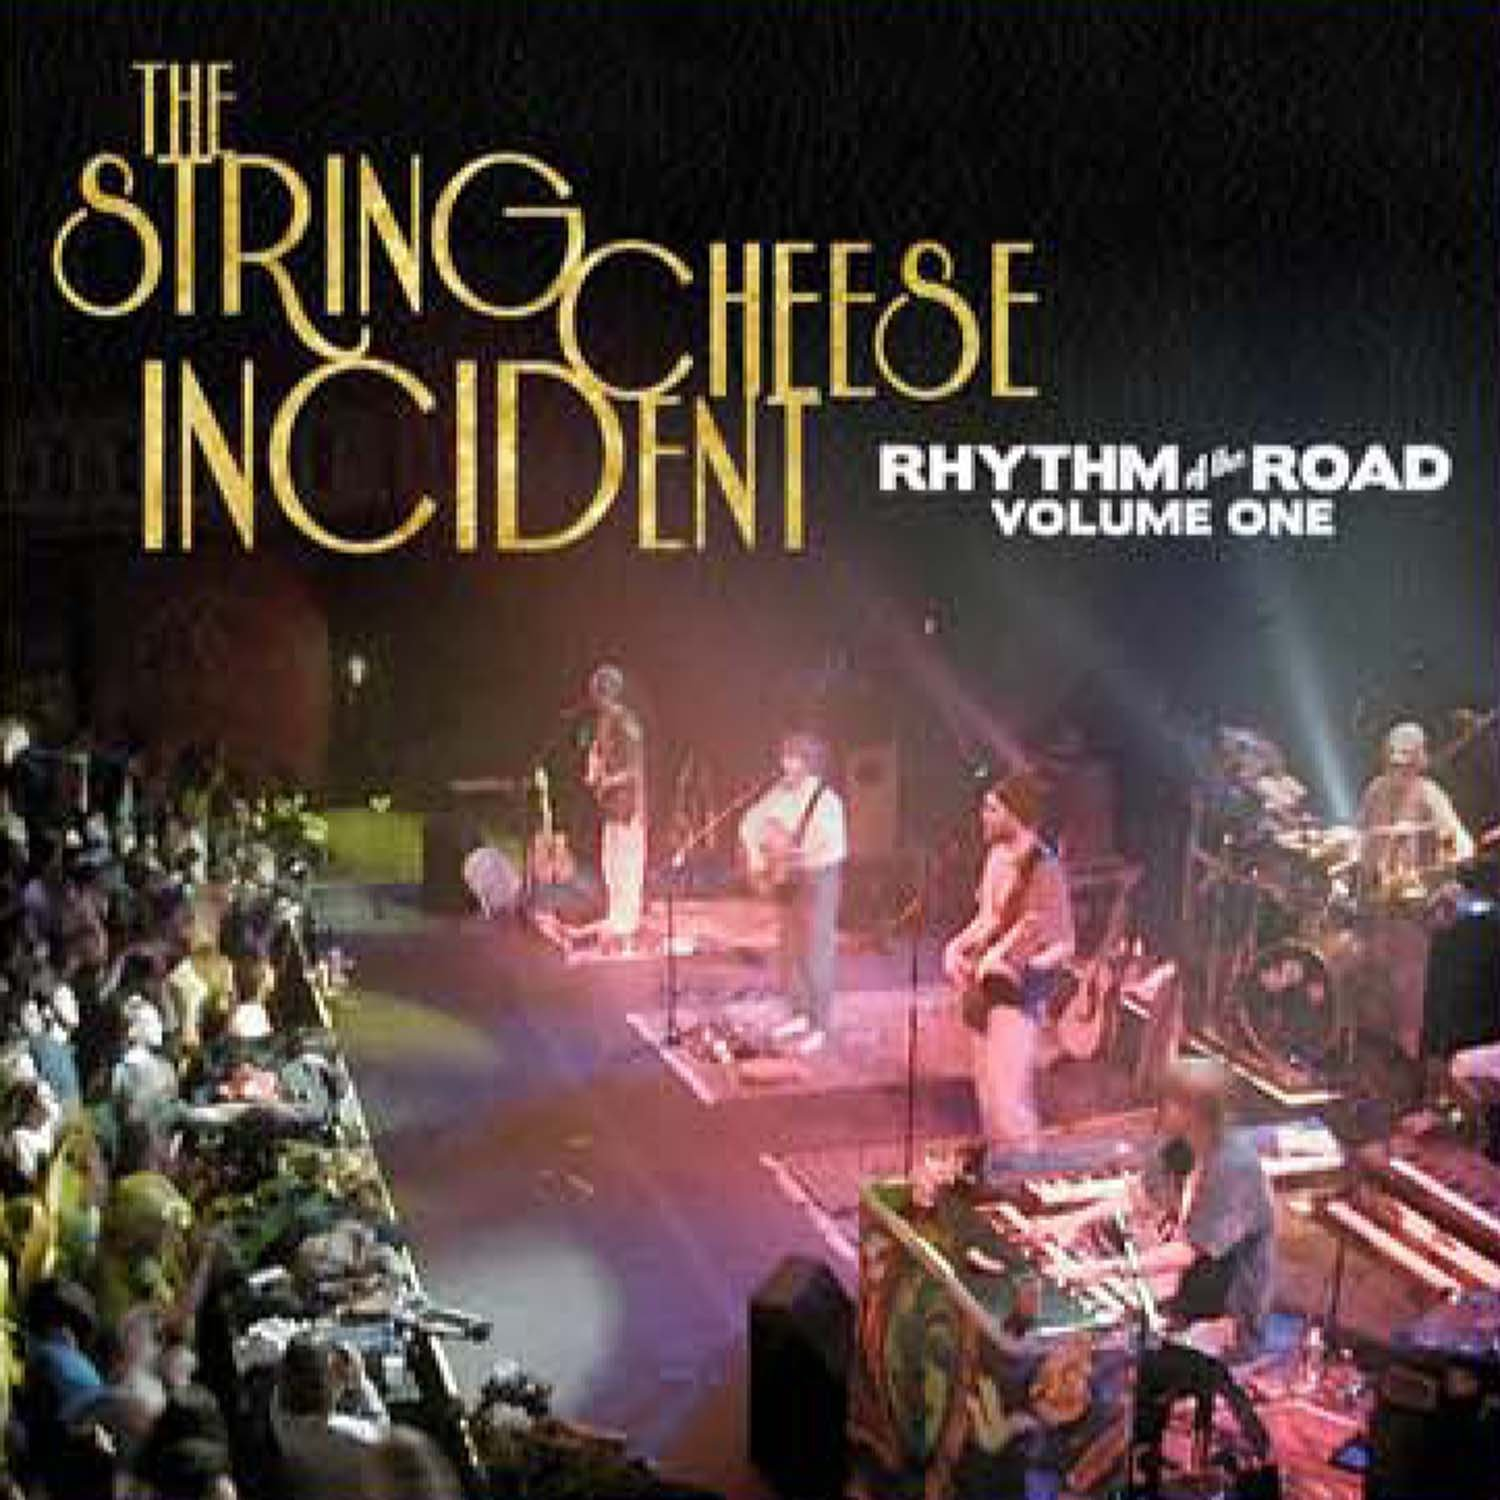 Image result for String Cheese Incident Rhythm of the road volume 1